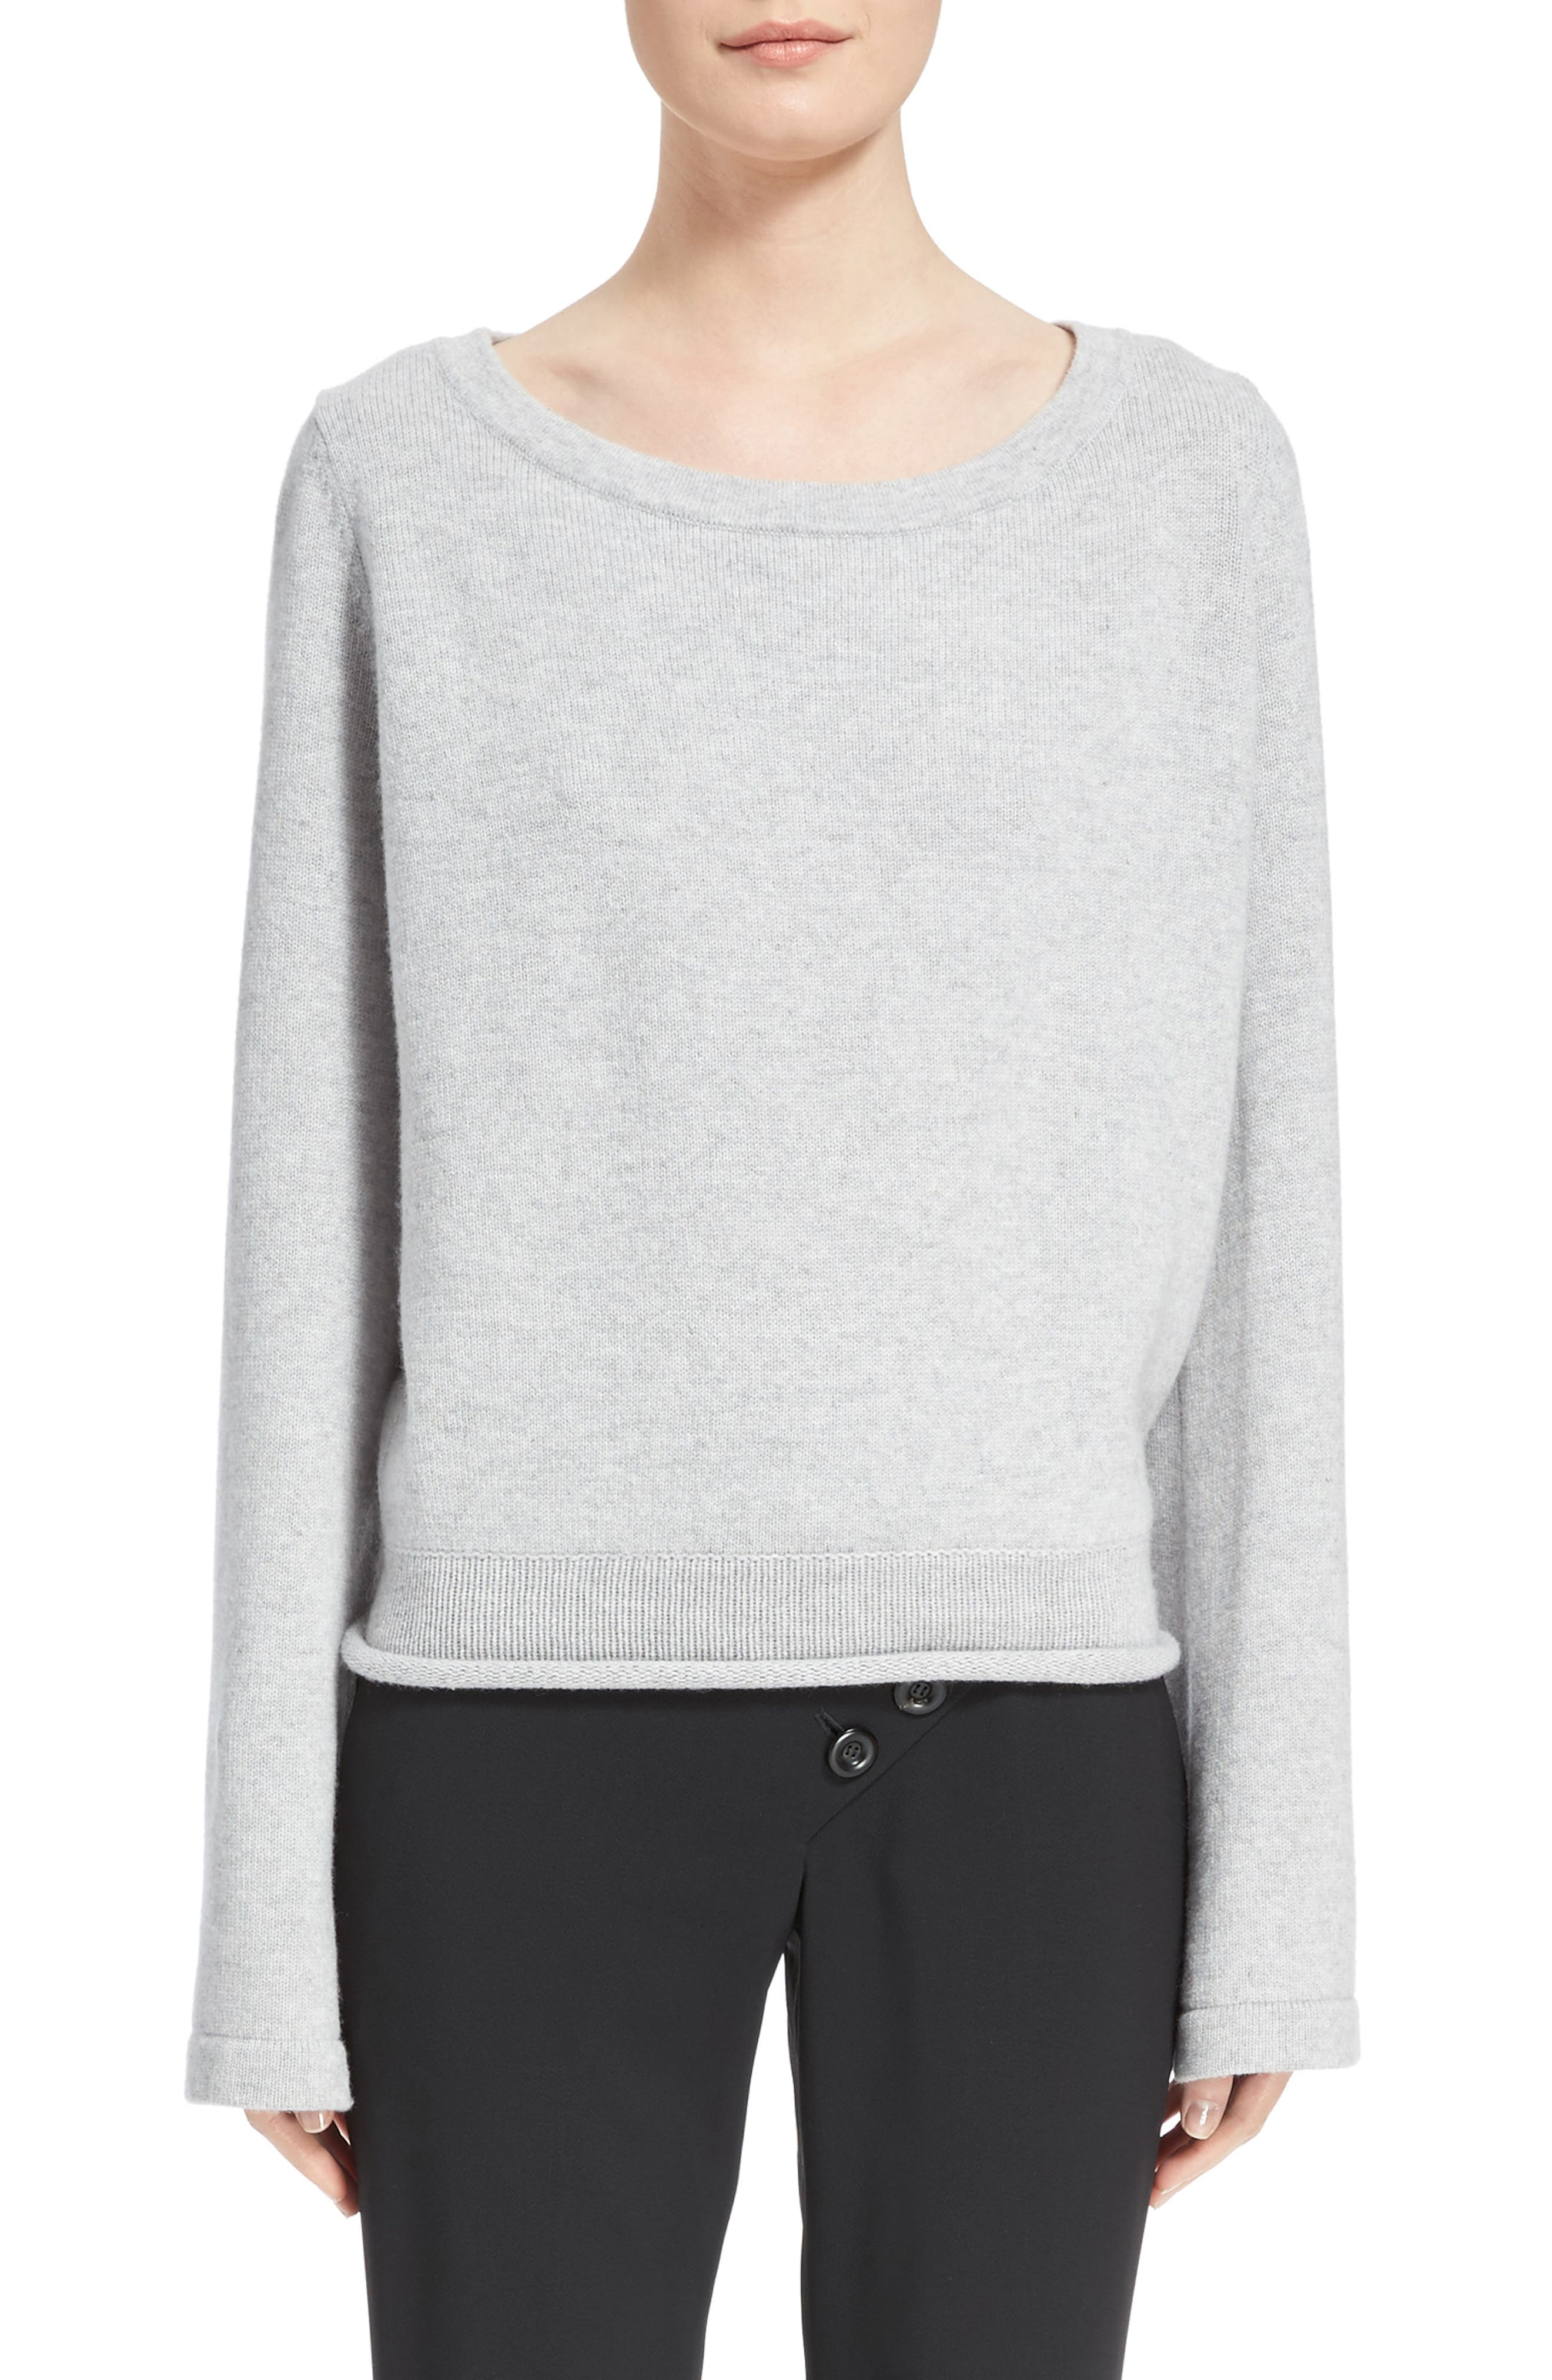 Iconic Cashmere Sweater,                             Main thumbnail 1, color,                             Cozy Grey